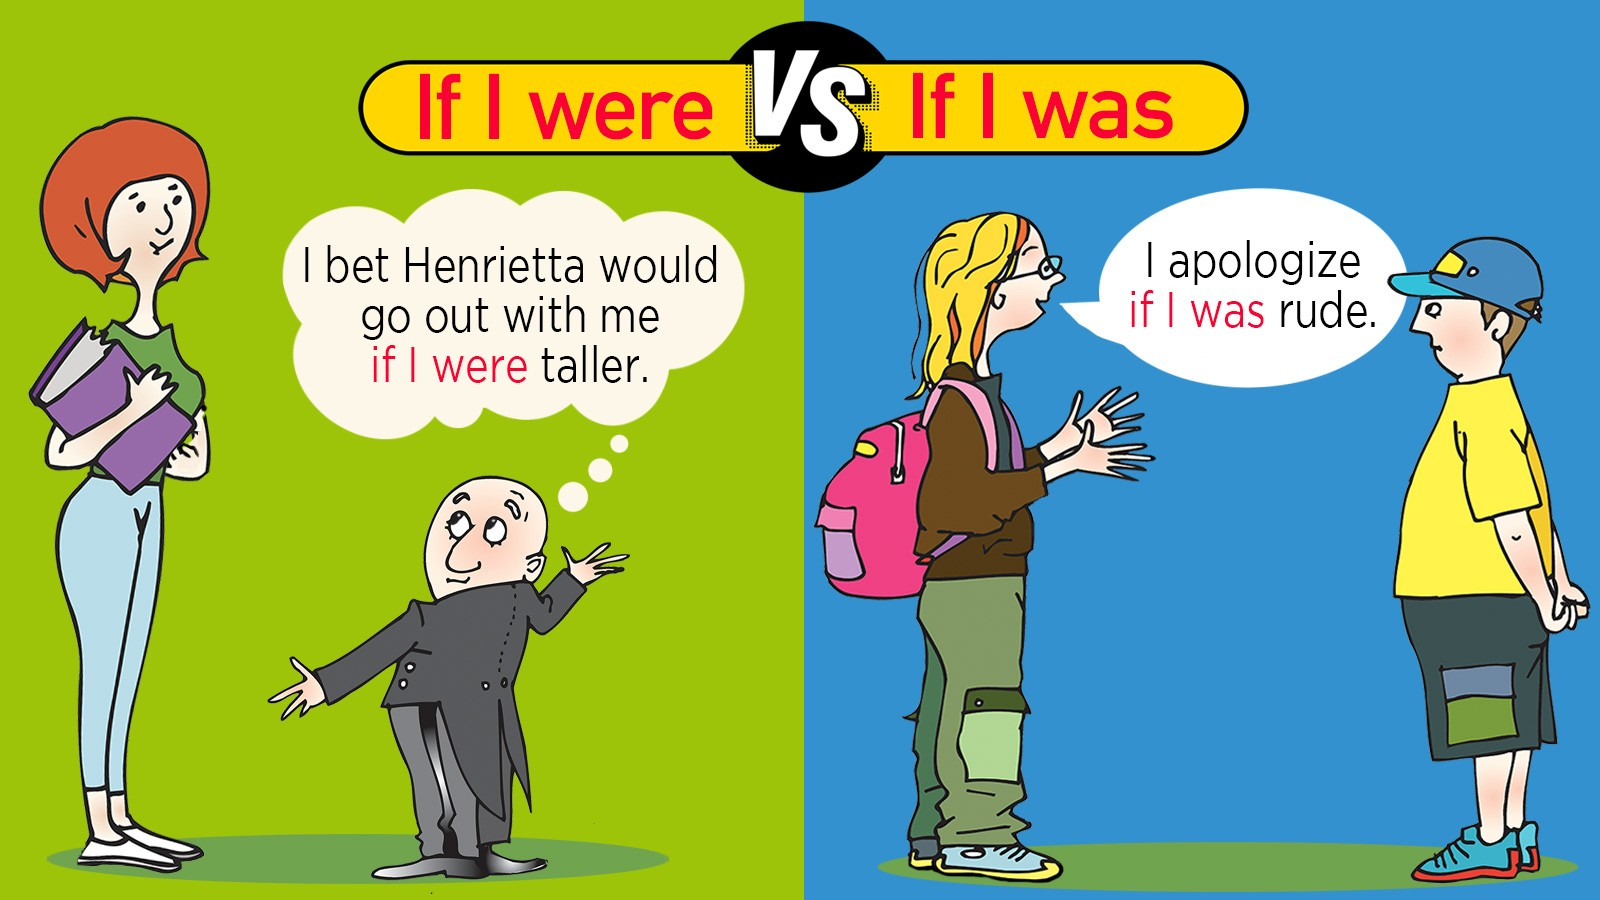 If I were vs If I was